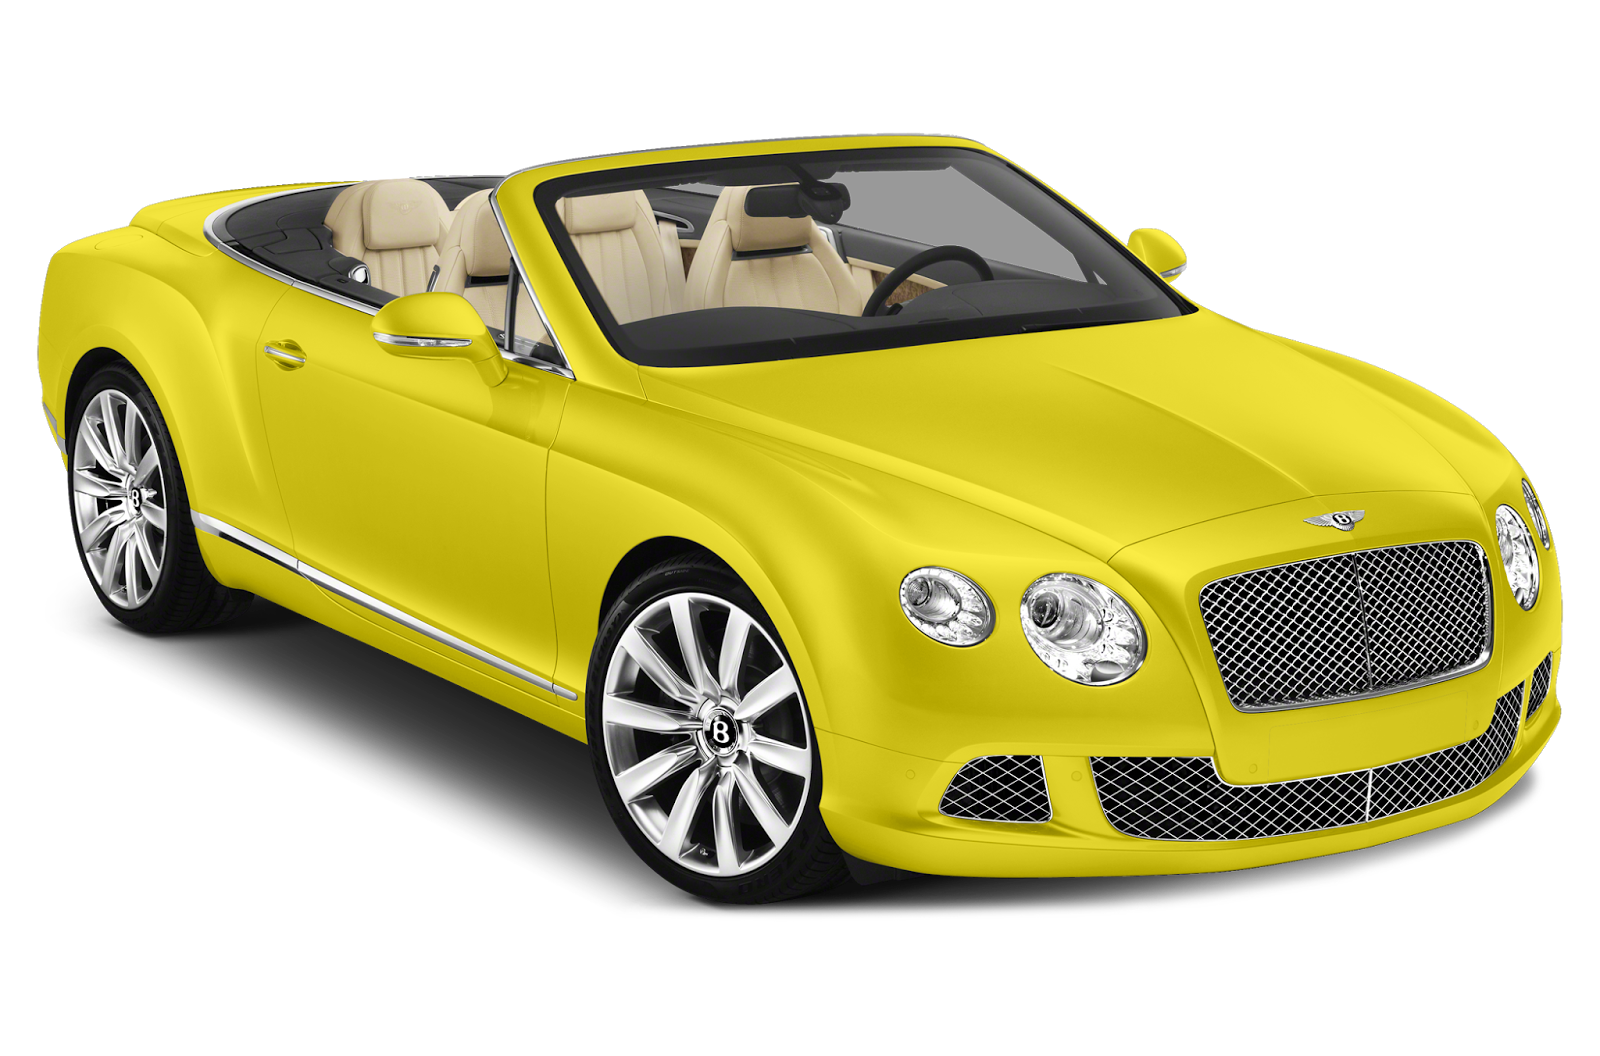 Luxury Cars 2015: Luxury Car 2015 High Resolution Pictures